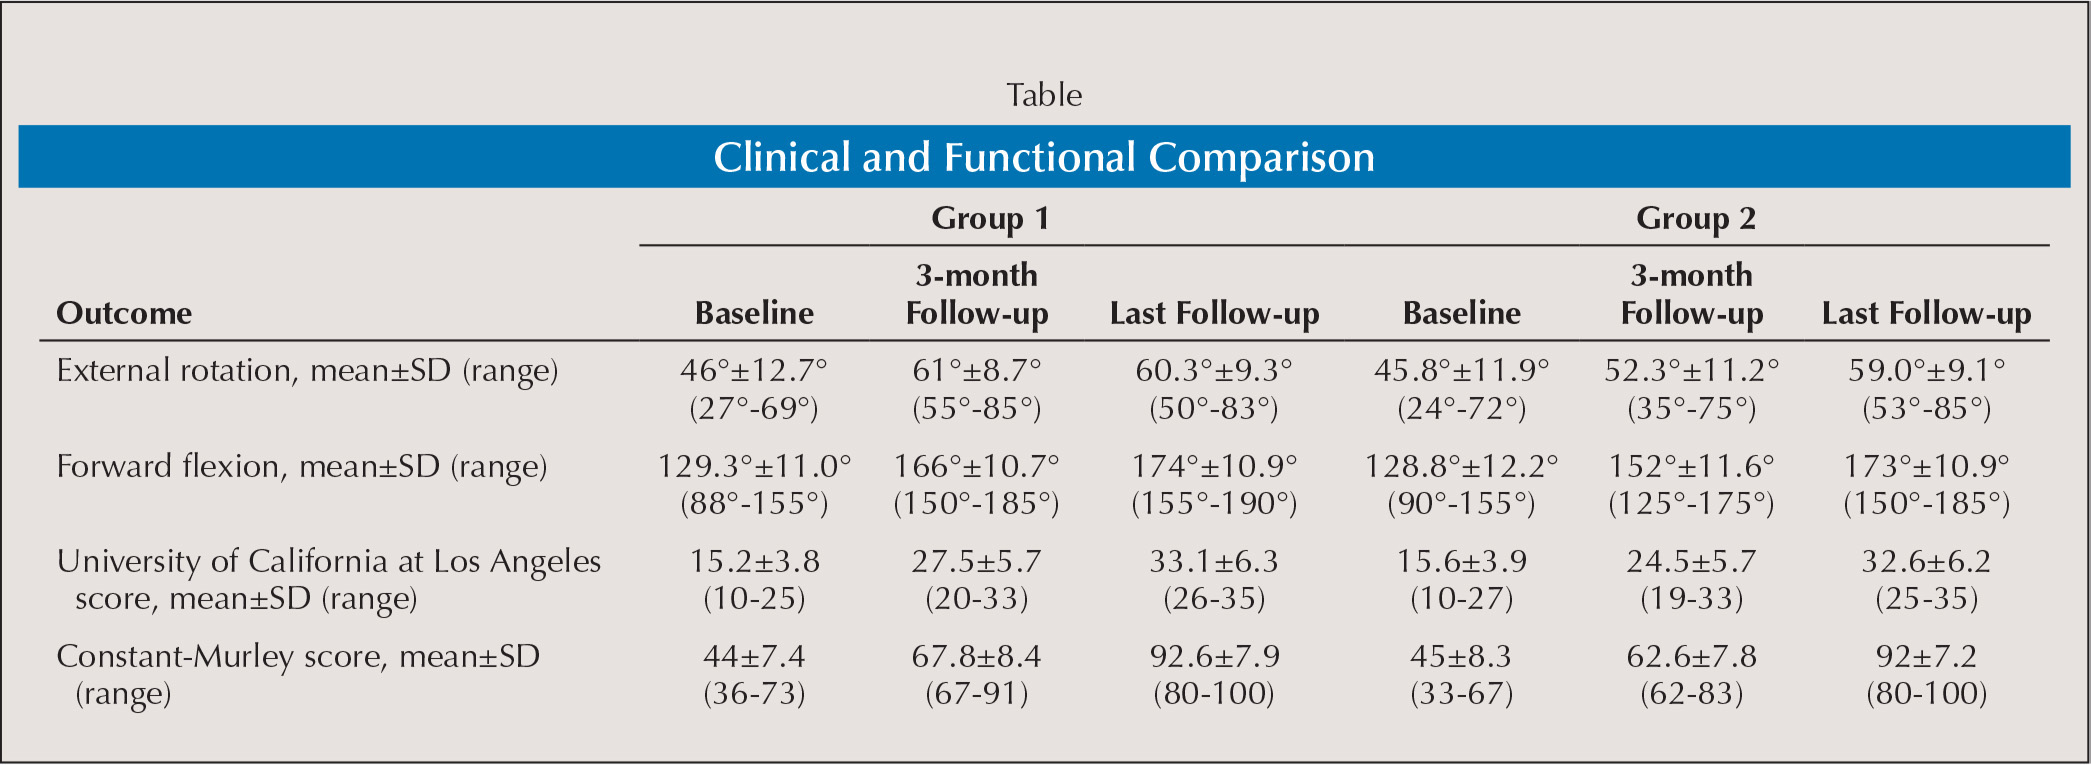 Clinical and Functional Comparison